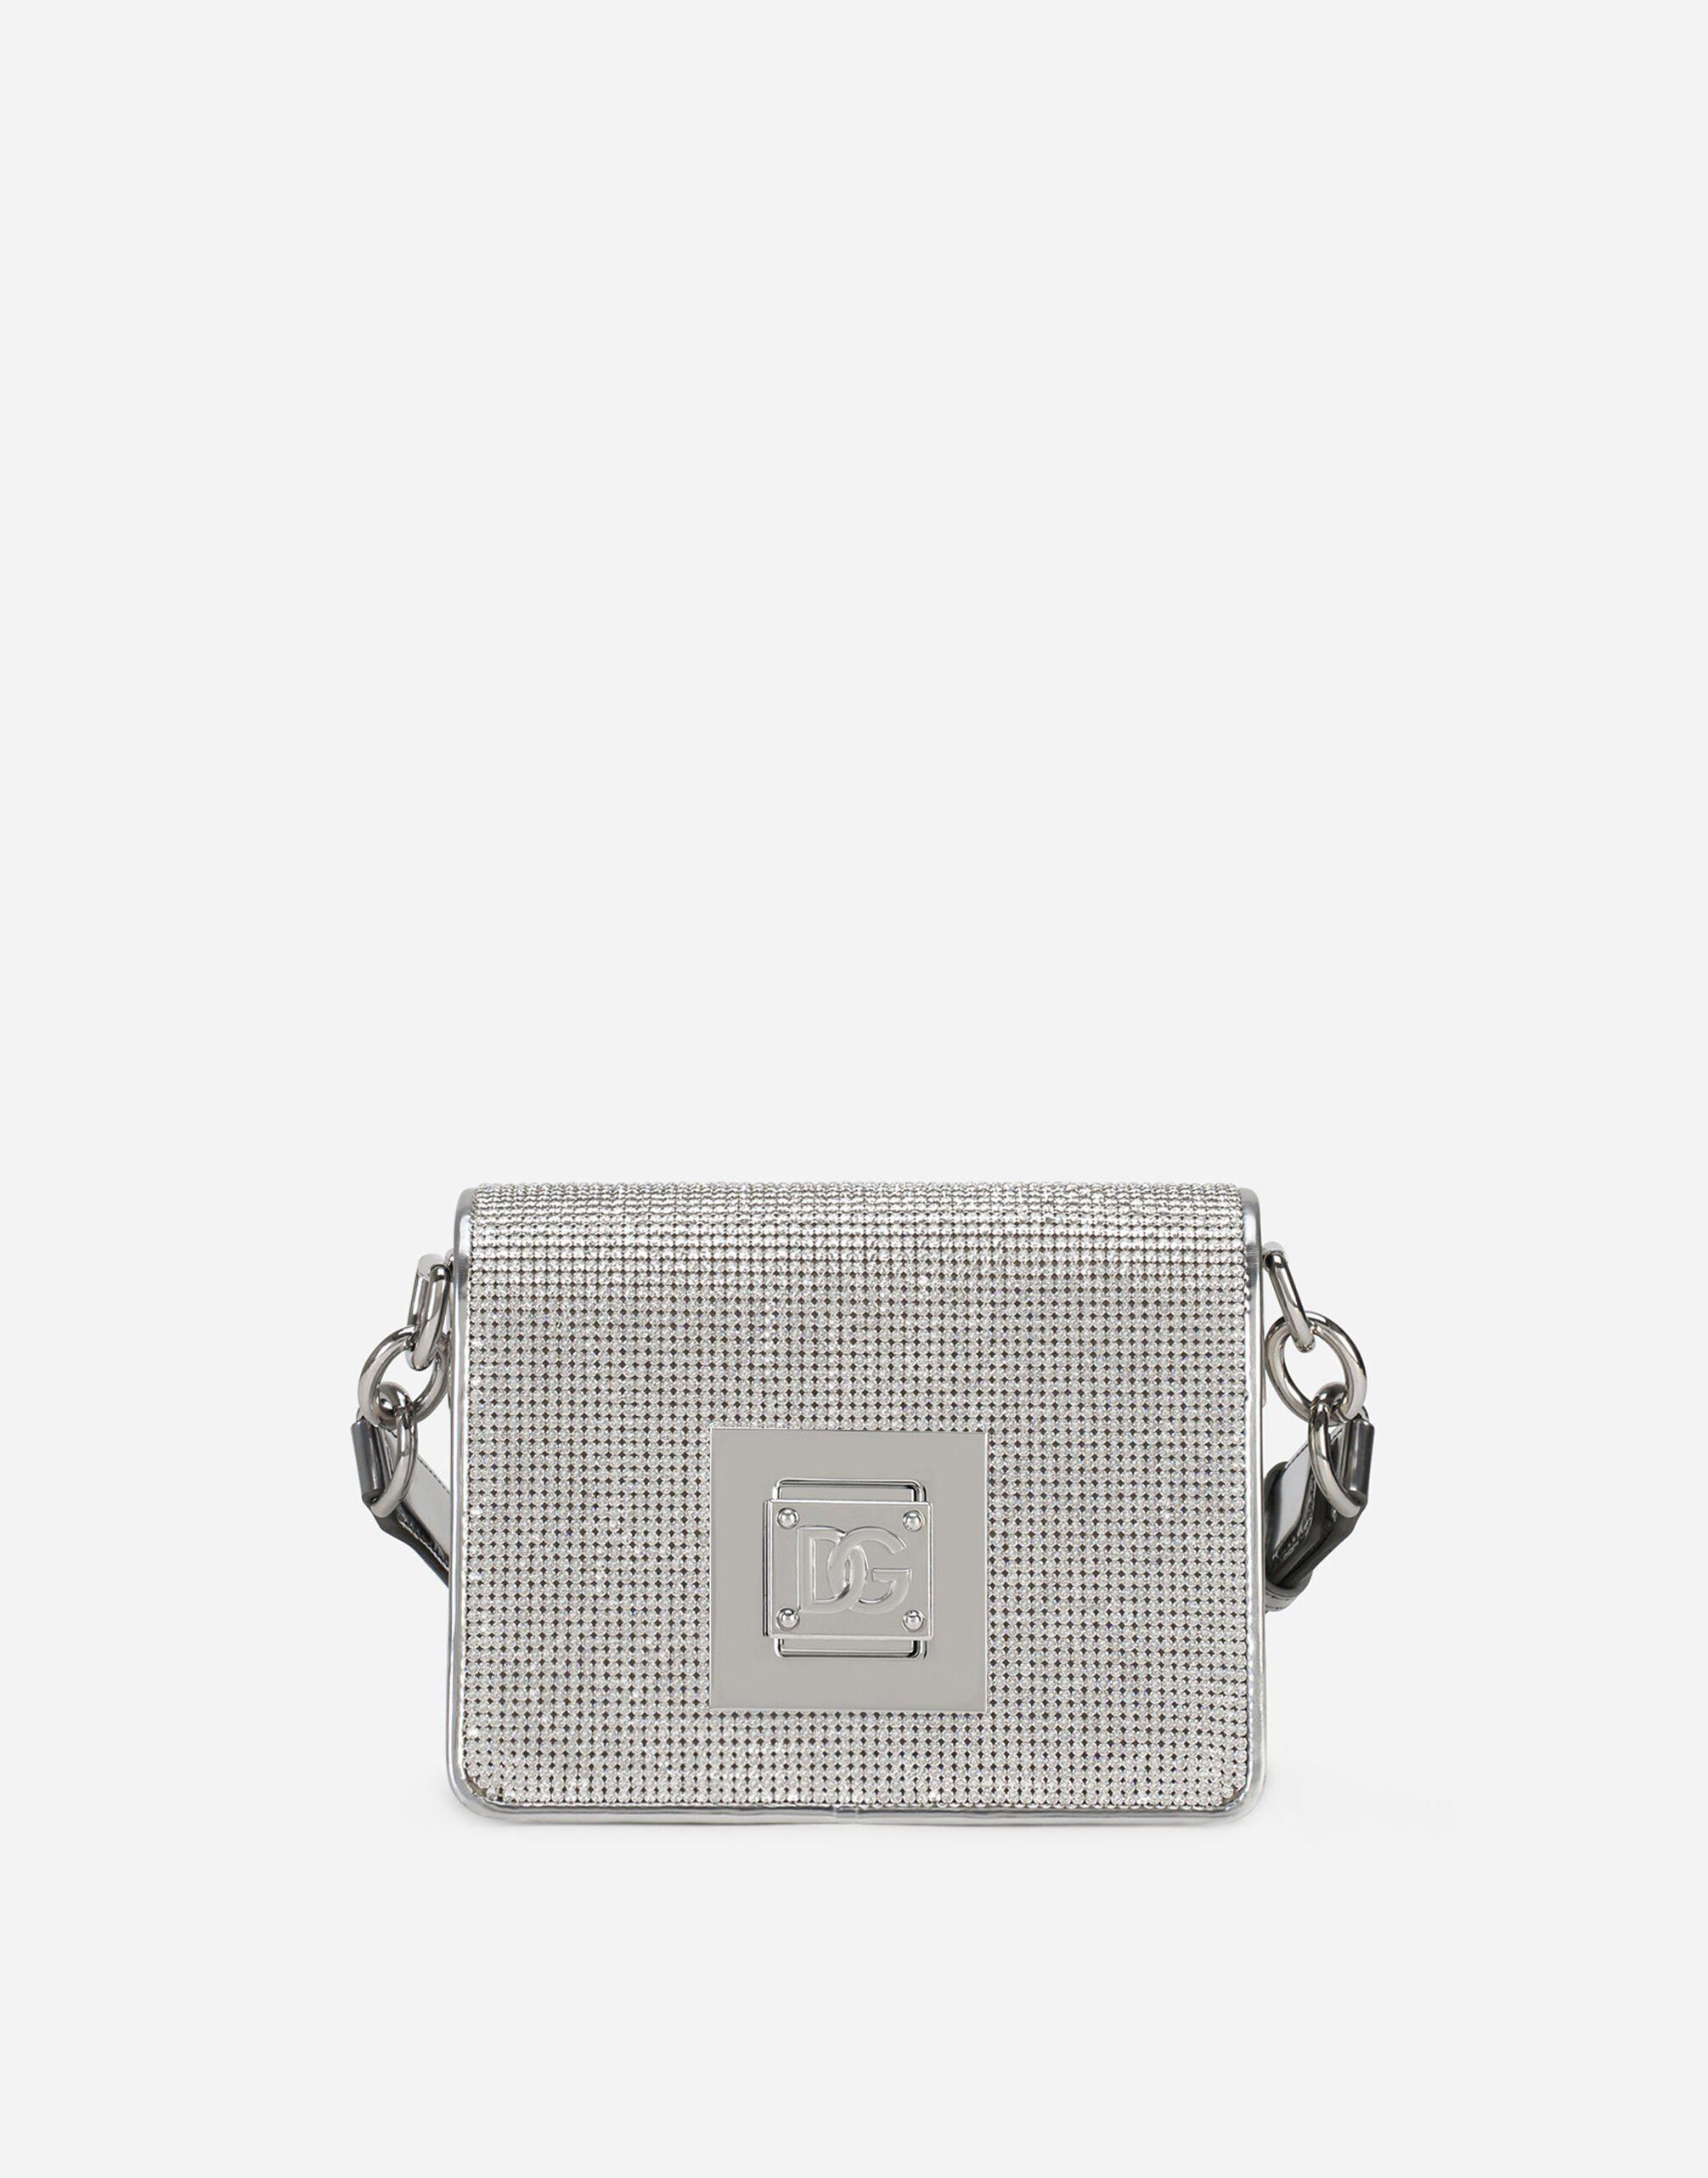 Small shoulder bag in rhinestone-detailed chain with DG fastening